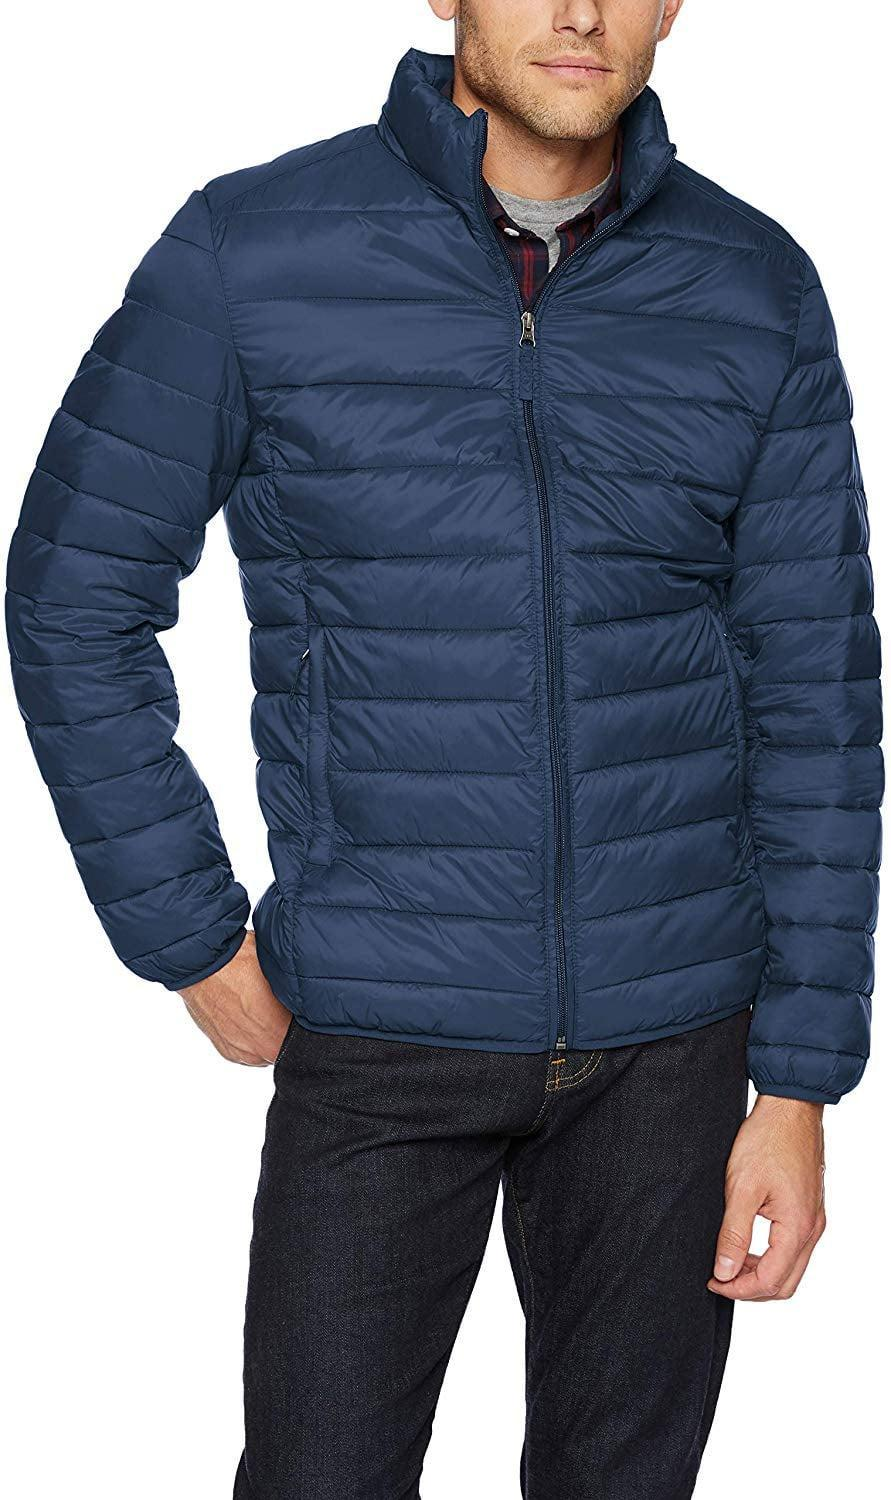 <p>This <span>Amazon Essentials Men's Lightweight Water-Resistant Packable Puffer Jacket</span> ($39) comes in lots of colors.</p>